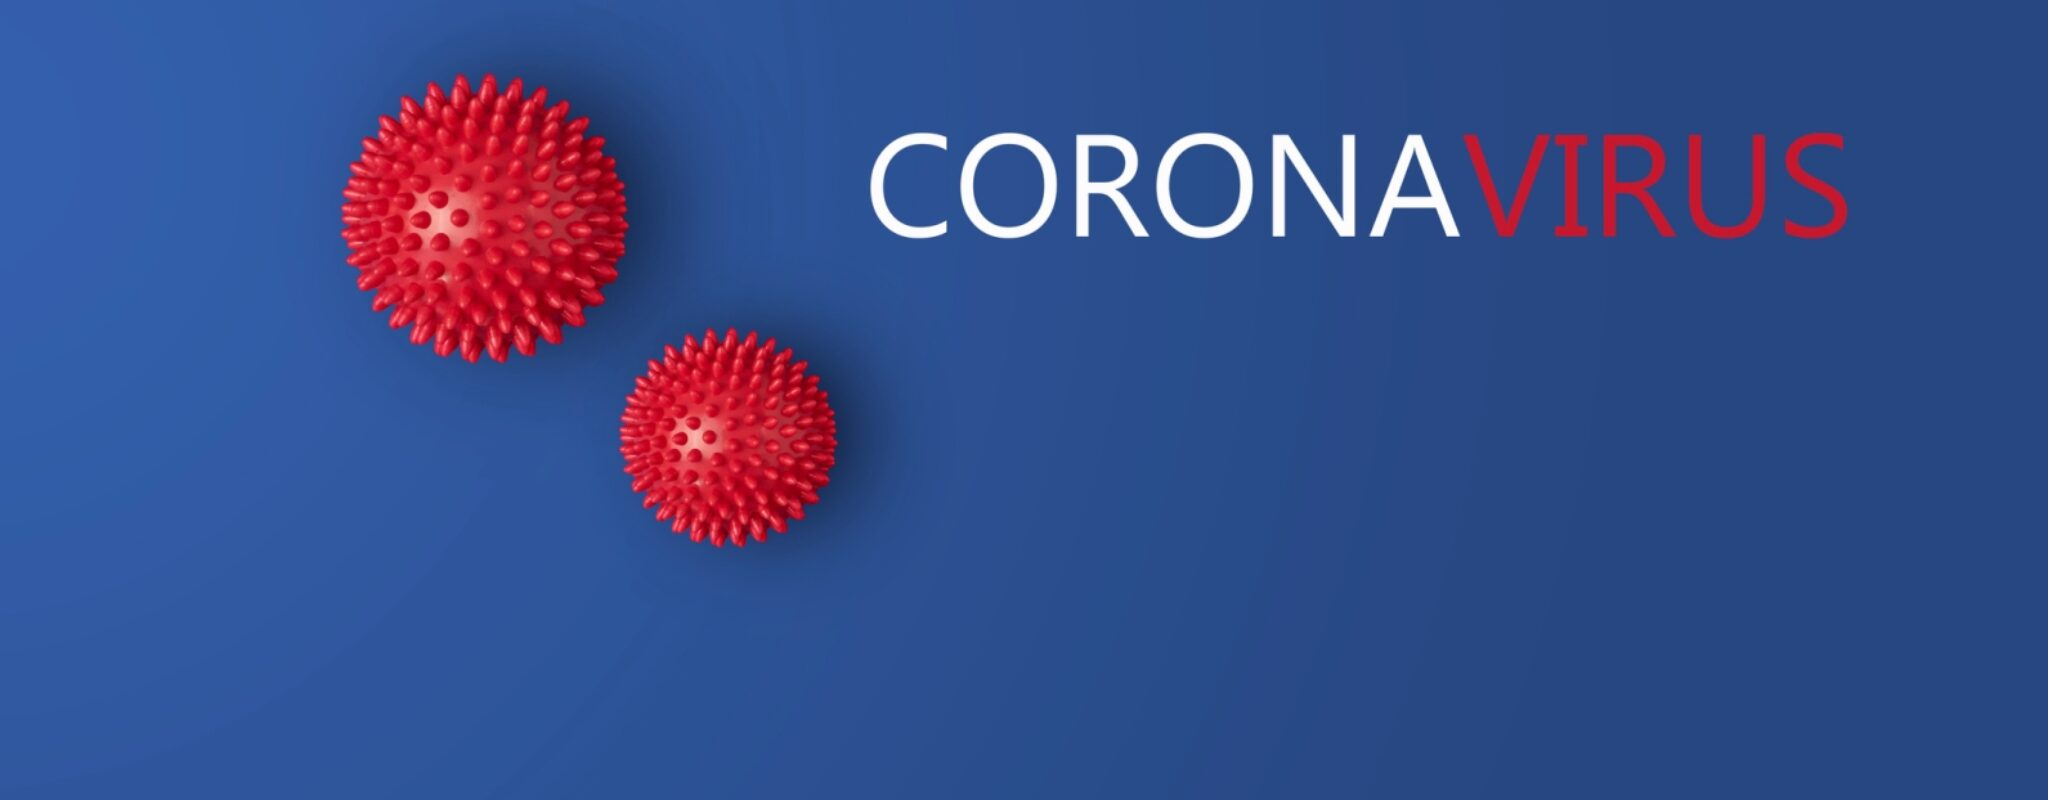 The Facts About Coronavirus and 2019-nCoV Outbreak